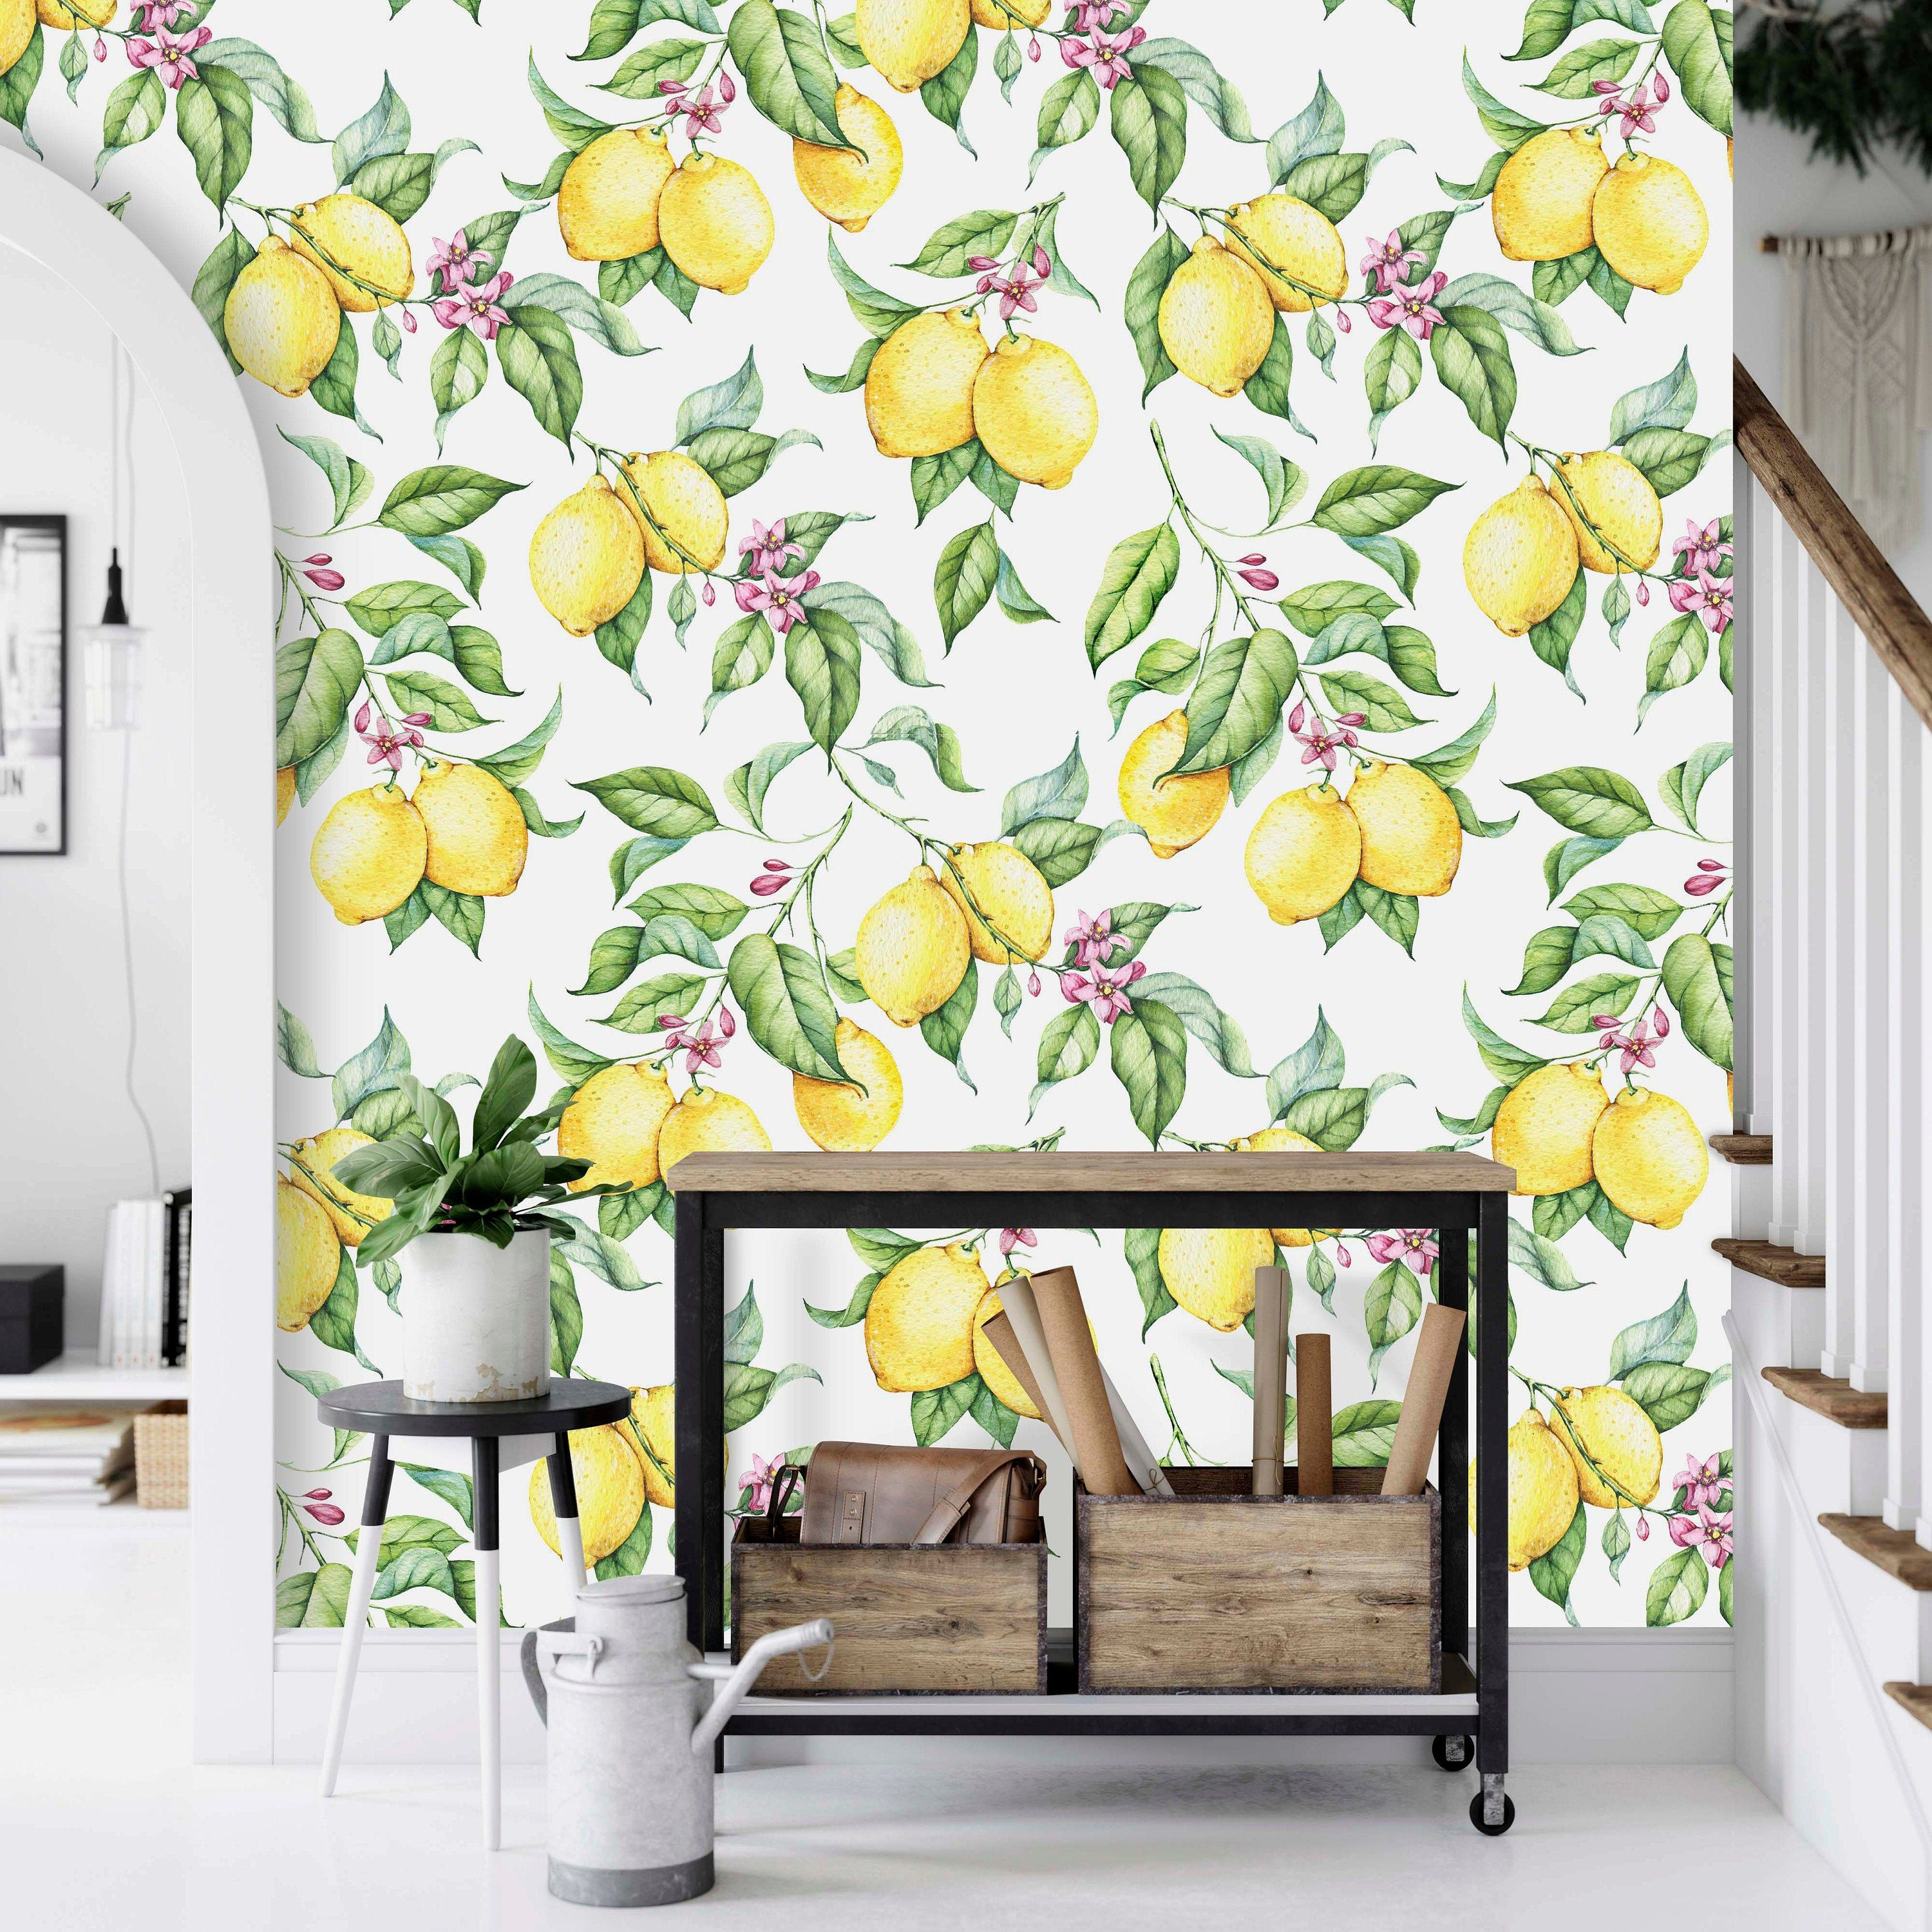 Vibrant Lemons Peel Stick Removable Wallpaper Mural By Green Planet Transform Your Home Into Your Ow Orange Peel Wall Texture Vinyl Wallpaper Cleaning Walls